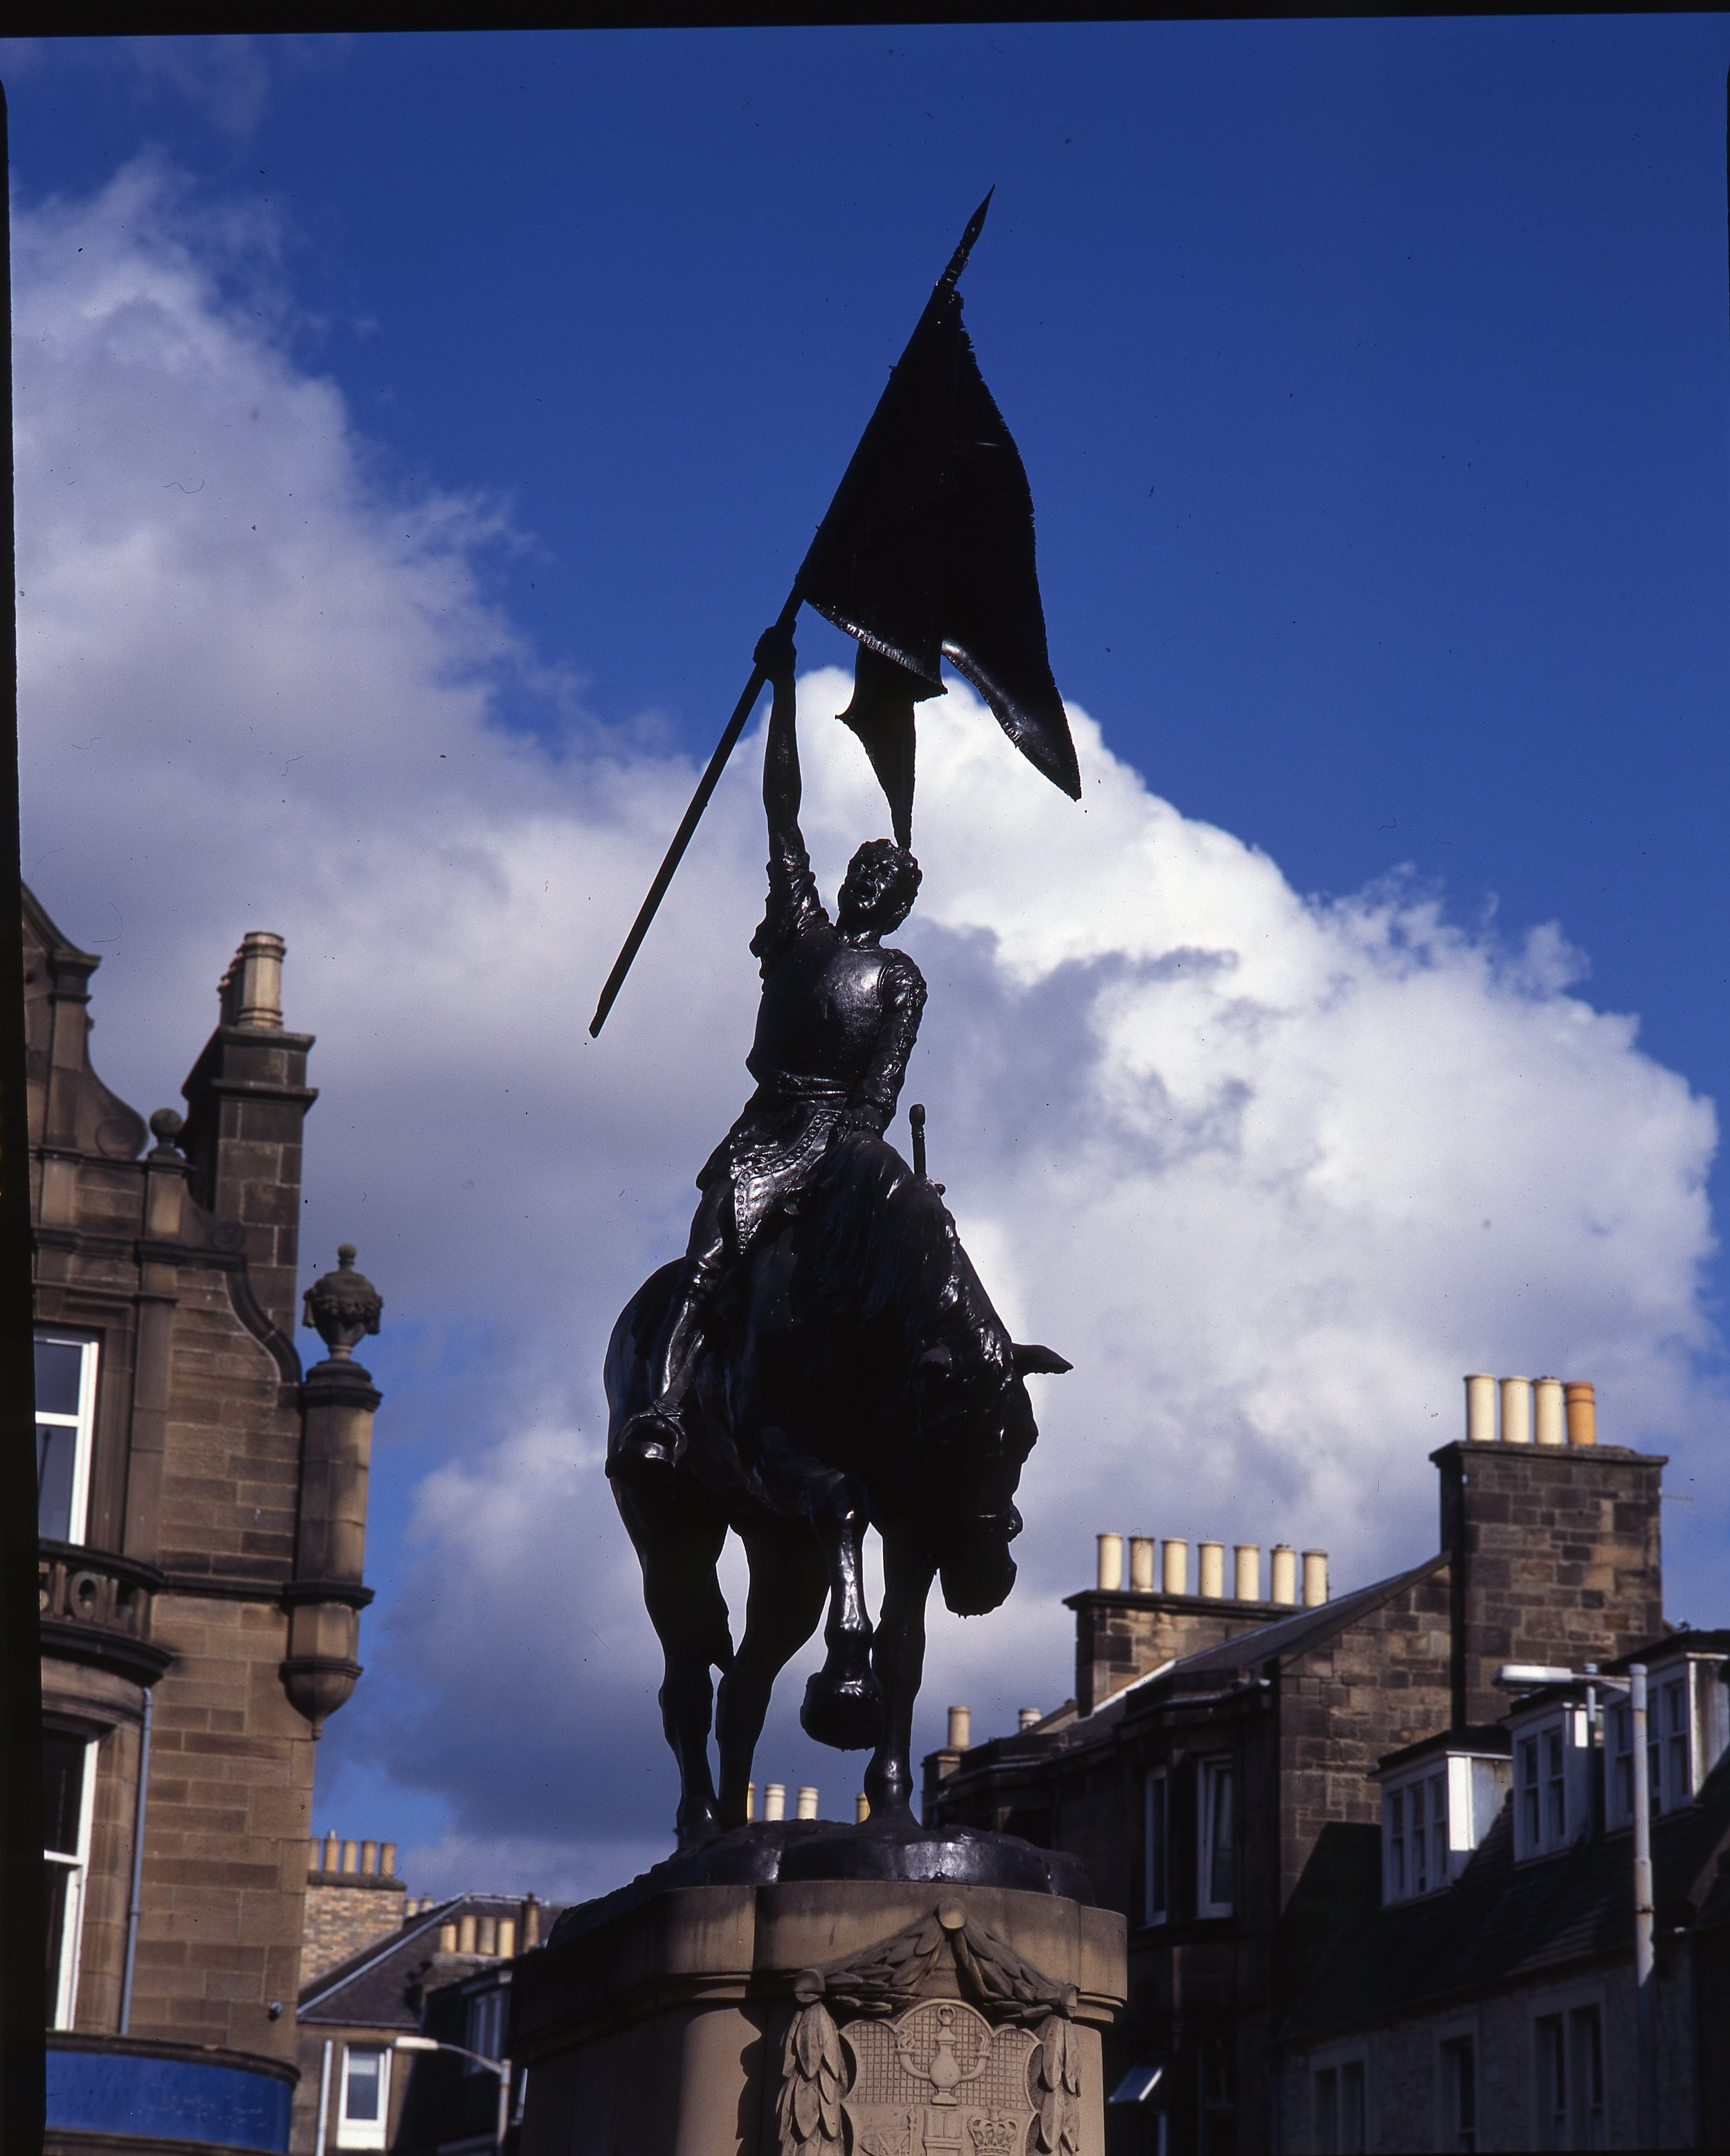 Hawick Border Reiver statue commemorates 1514 capture of Hexham Pennant from English soldiers.